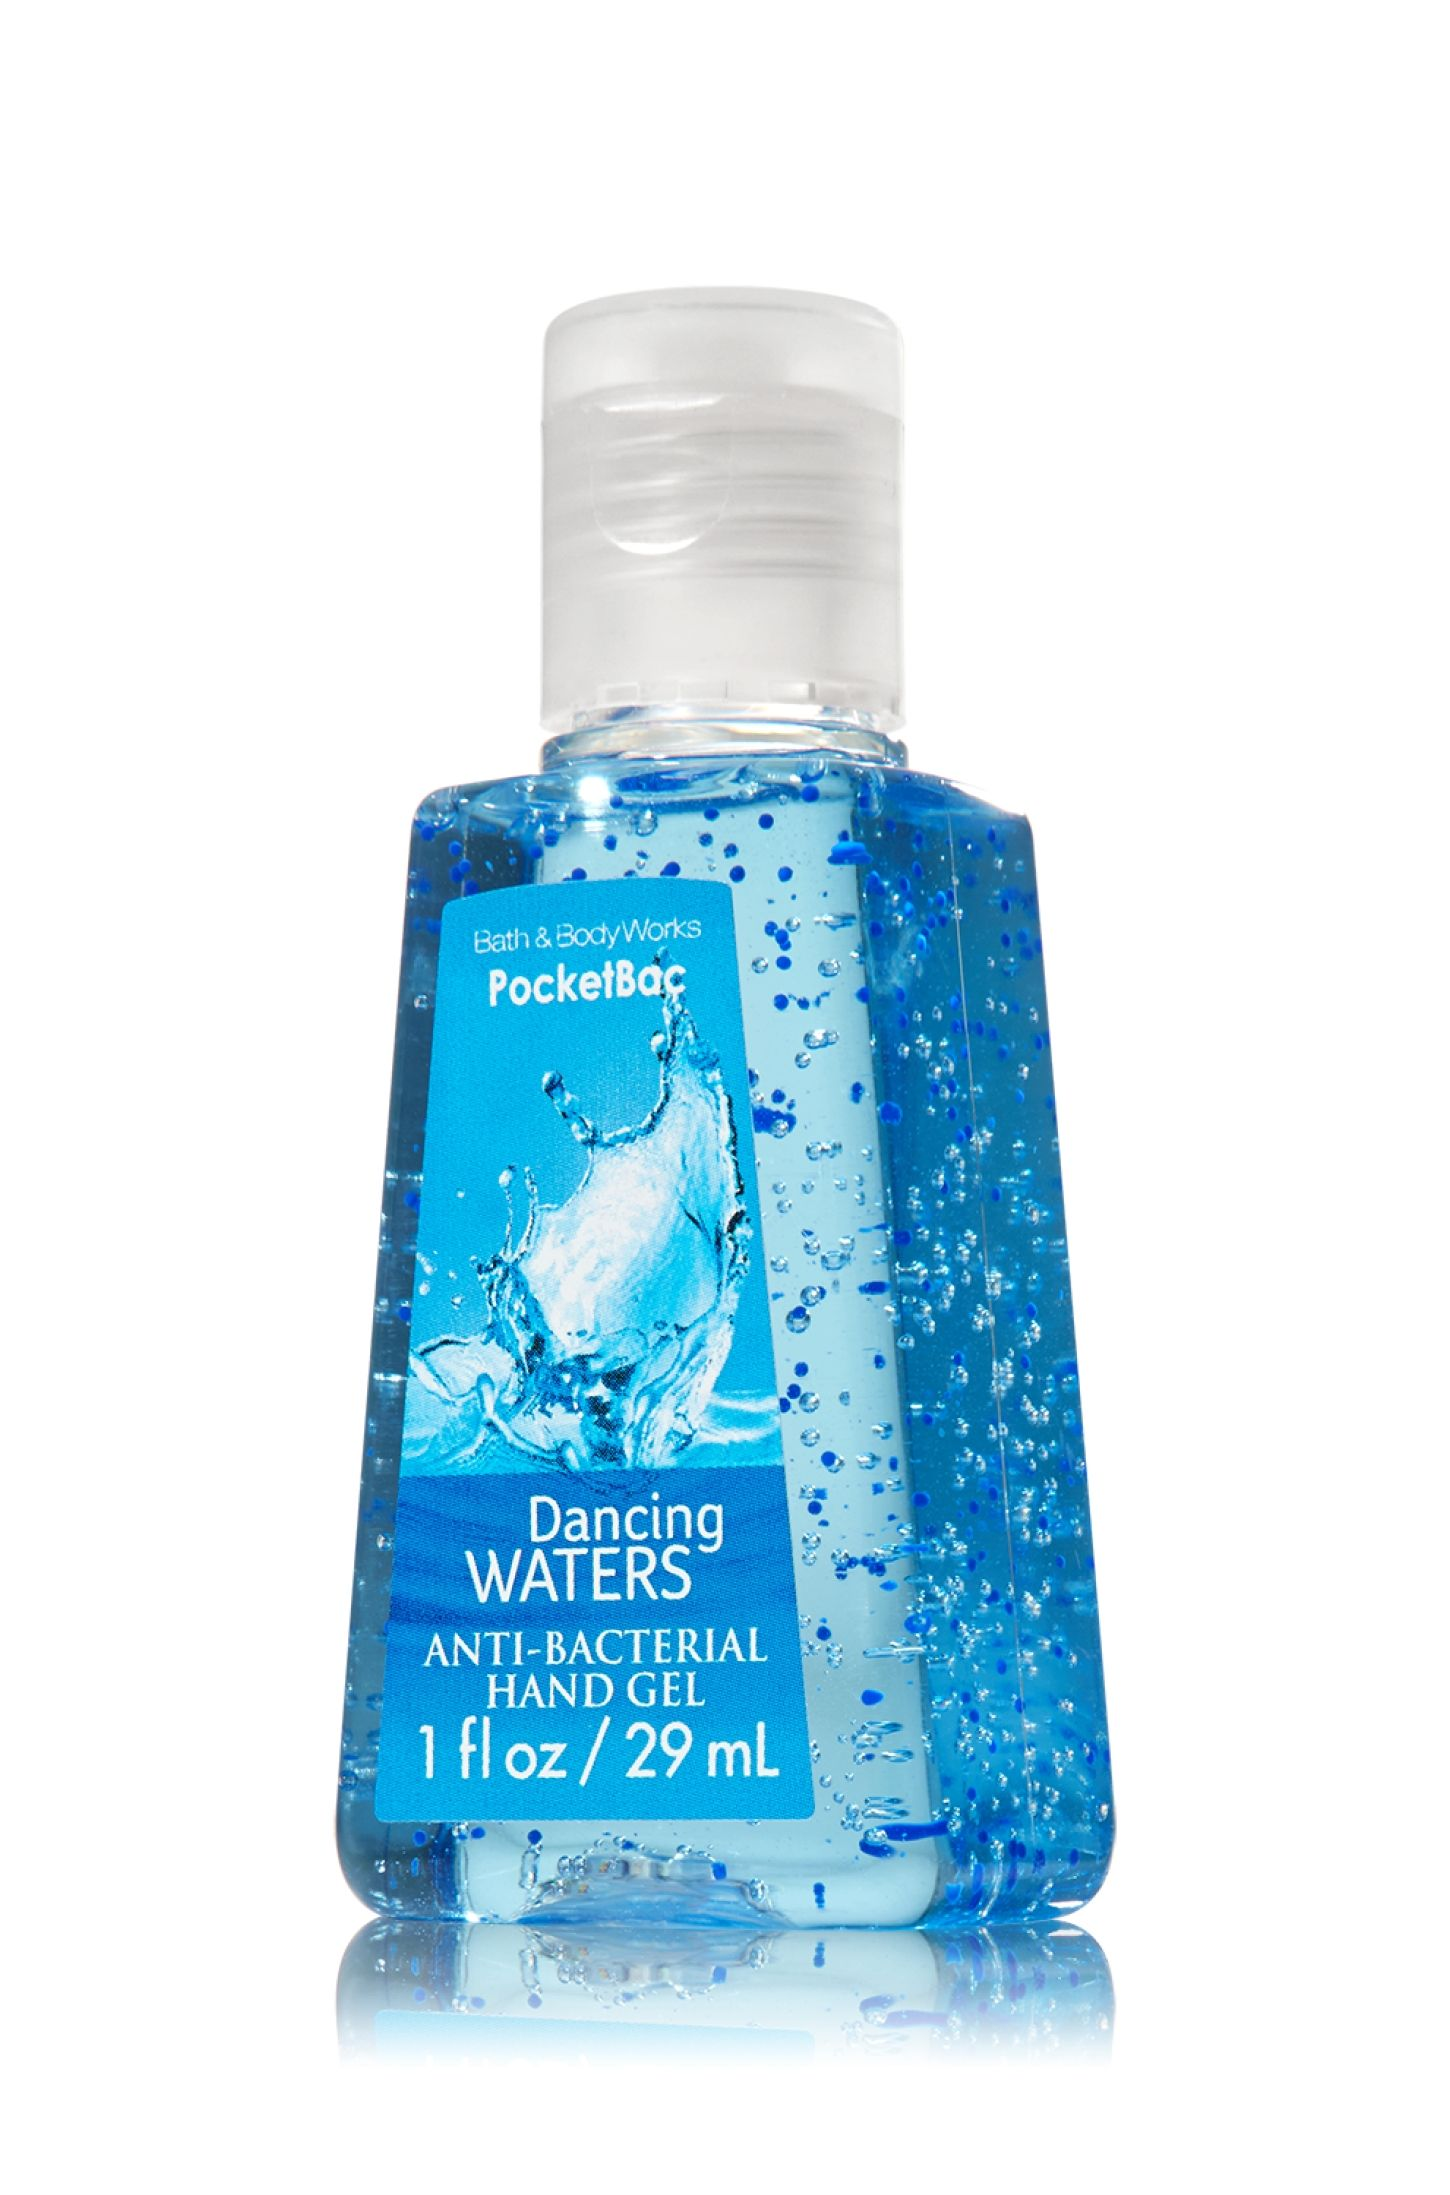 Dancing Waters Pocketbac Sanitizing Hand Gel Soap Sanitizer